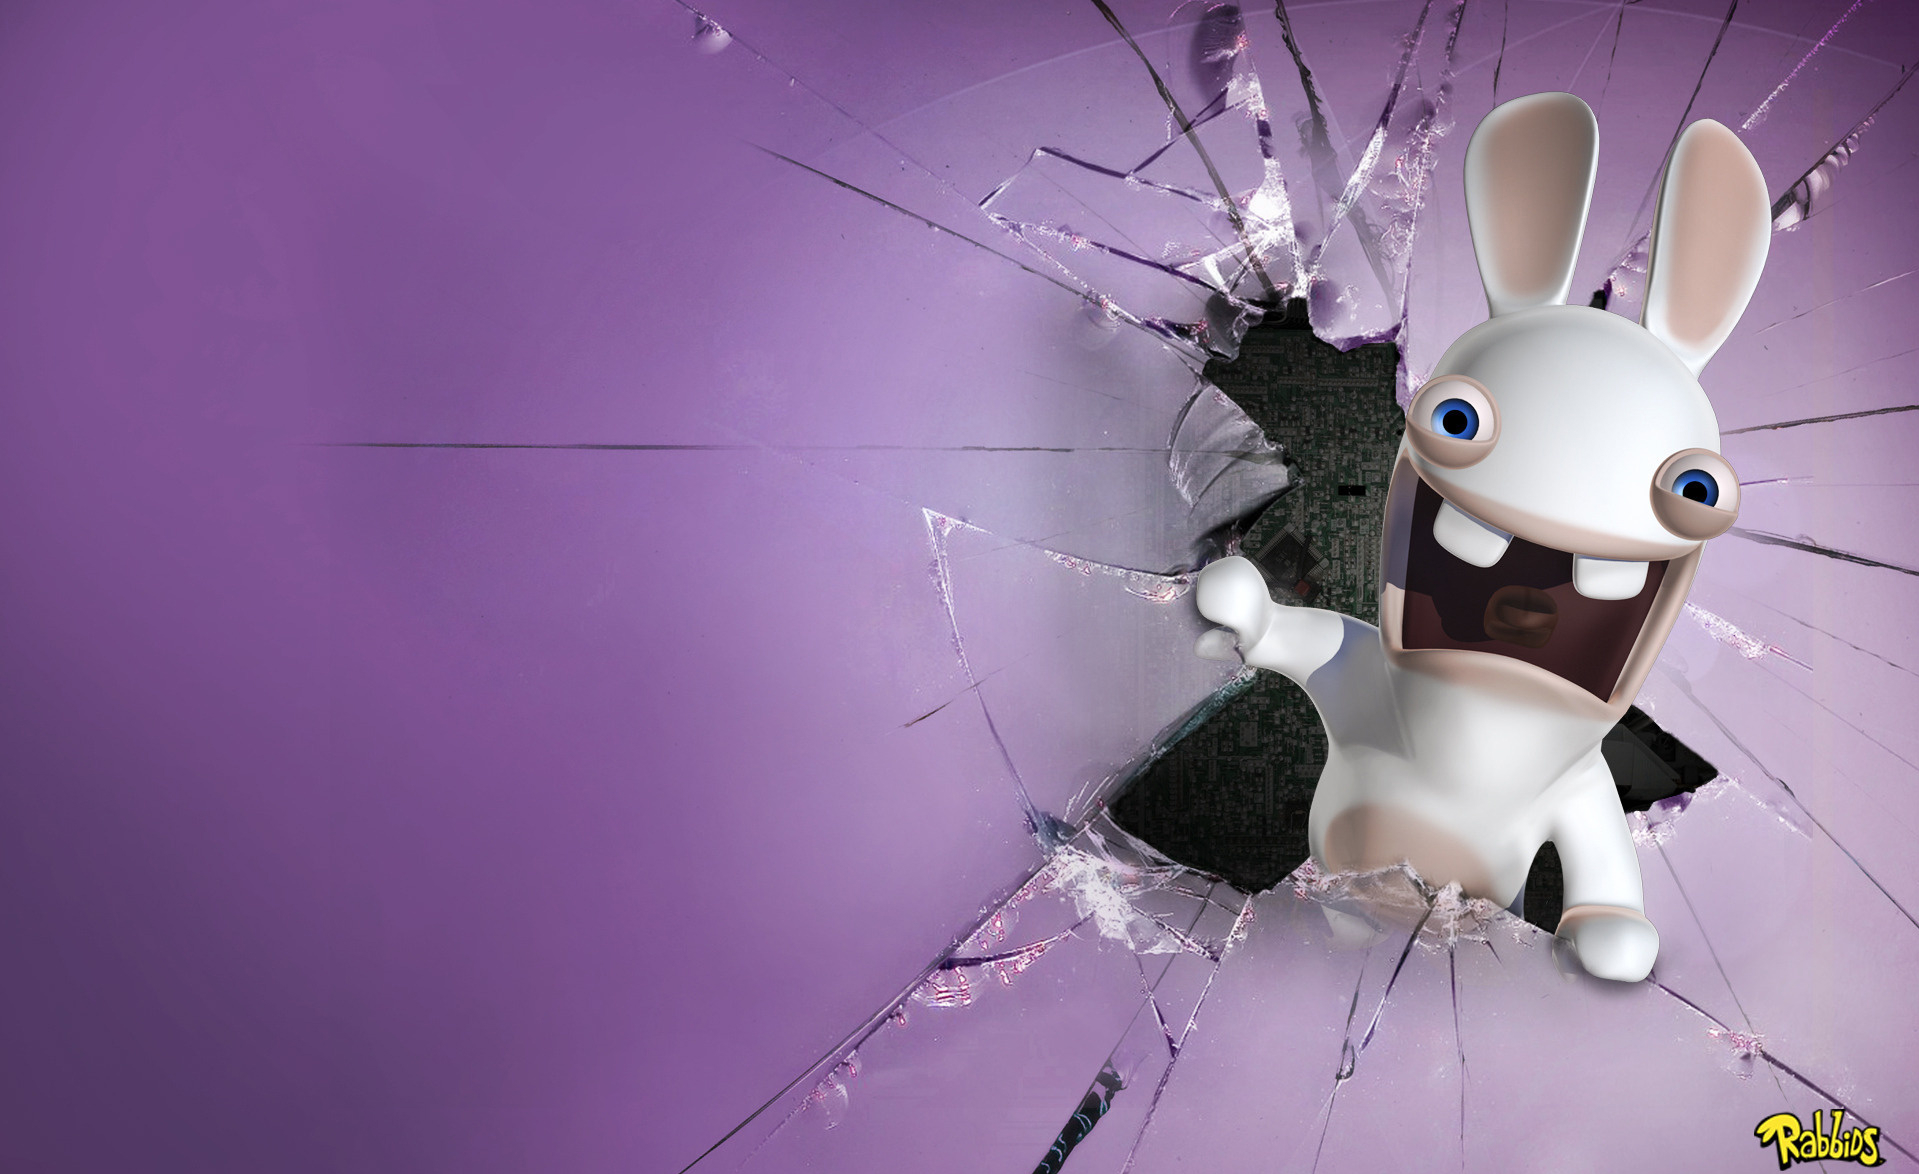 Raving Rabbids Wallpaper And Background Image